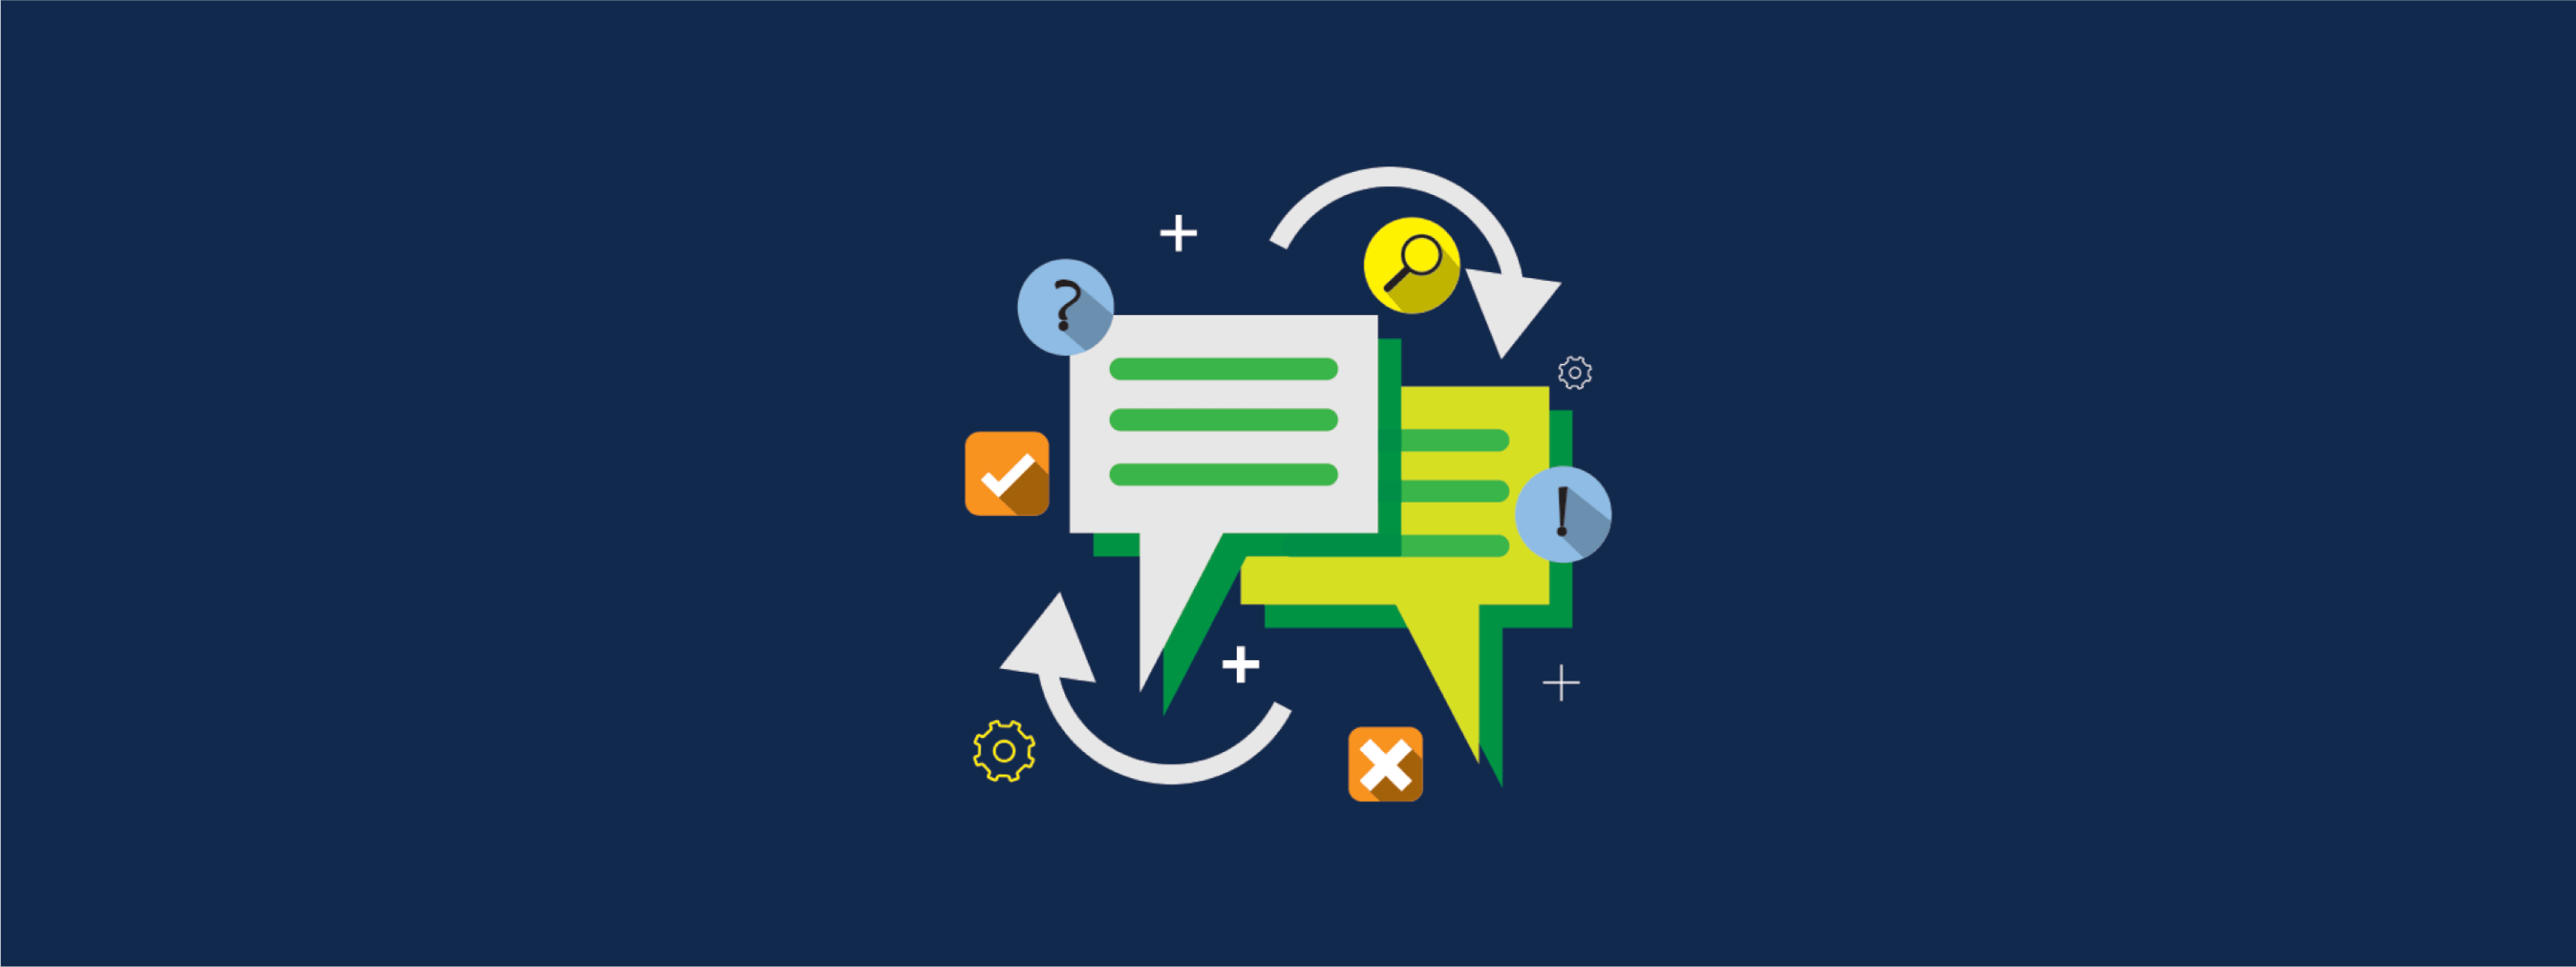 5 Best Website Survey & Feedback Questions for Users Online